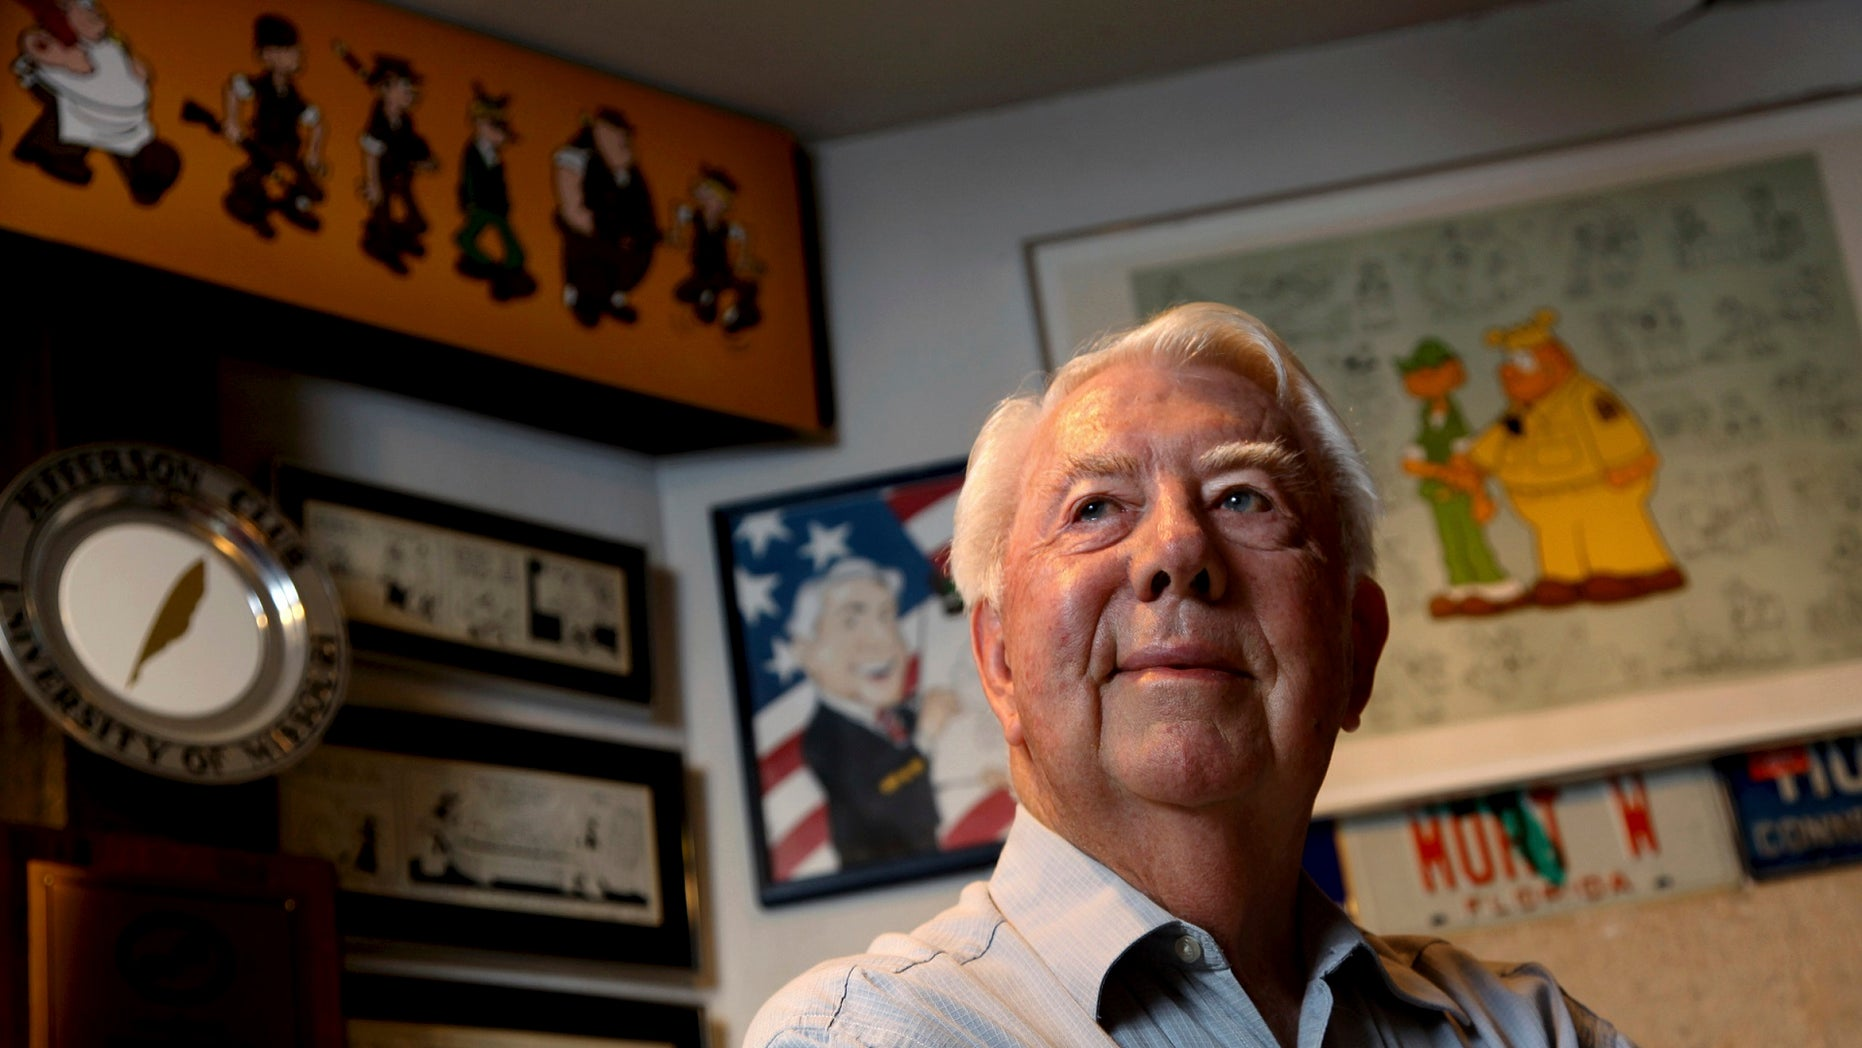 Mort Walker, the artist and author of the Beetle Bailey comic strip, died Saturday at age 94, his family confirmed.